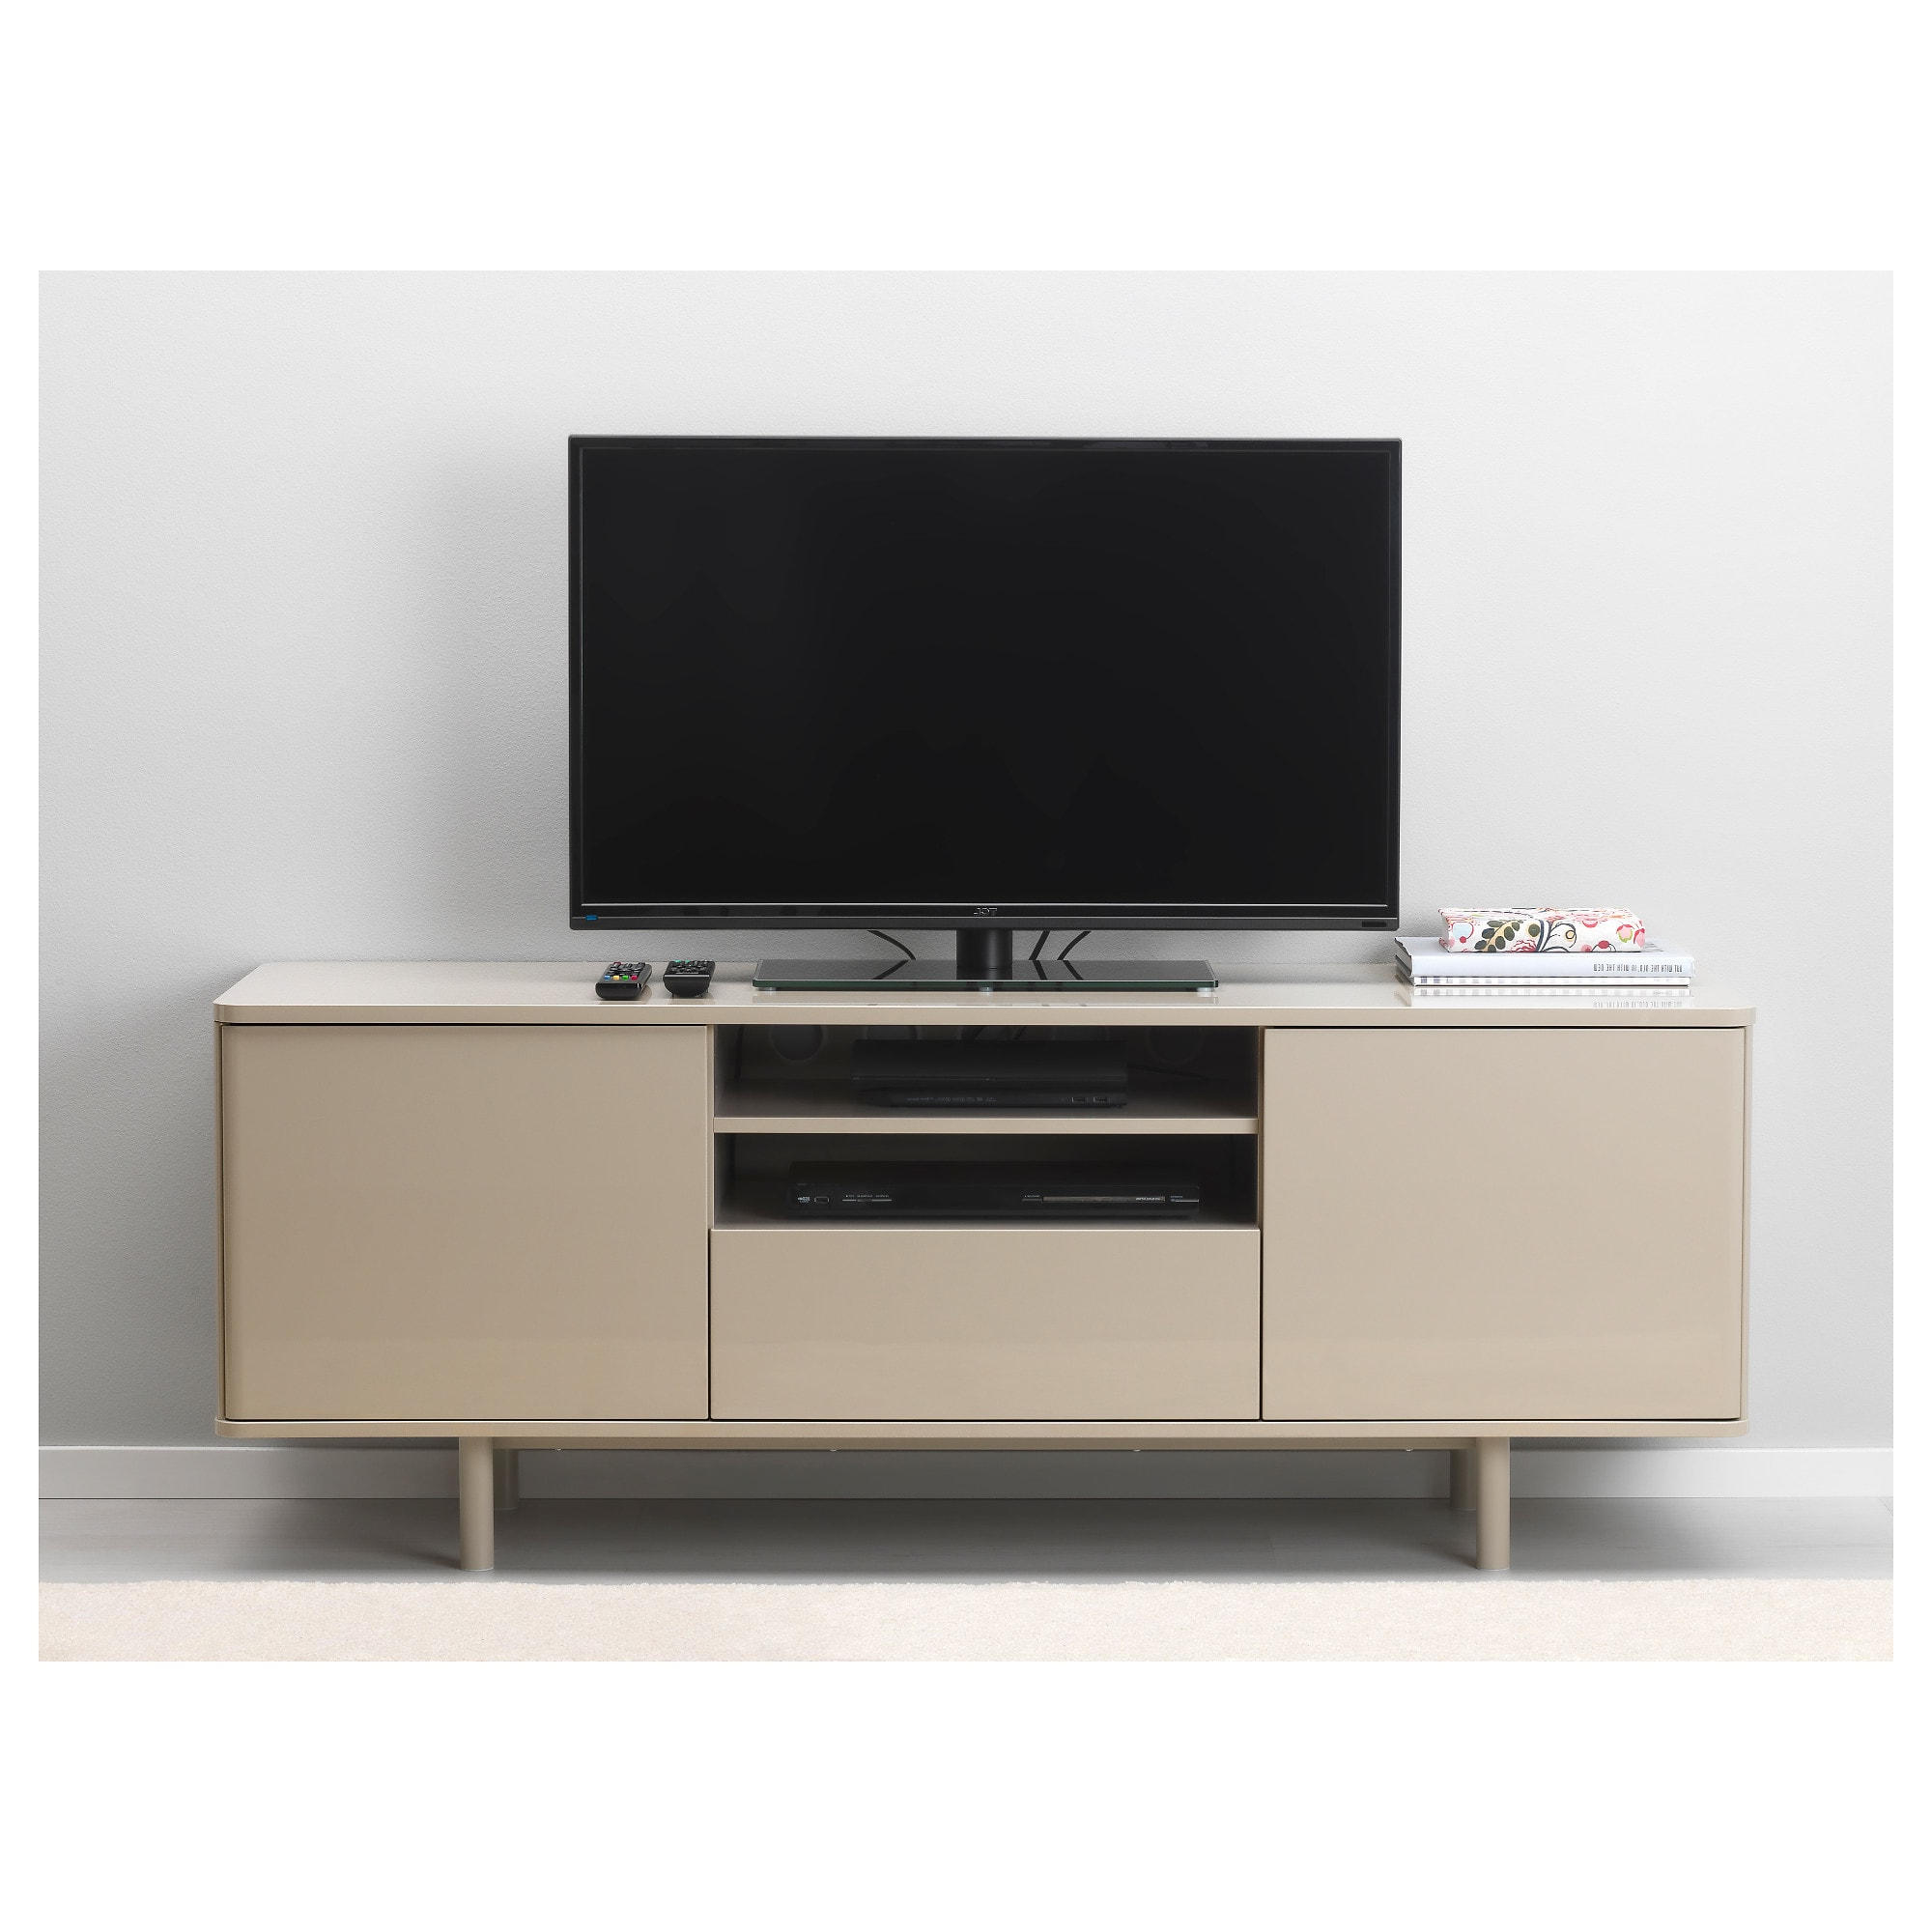 Widely Used Mostorp Tv Bench High Gloss Beige 160 X 47 X 60 Cm – Ikea With High Gloss Tv Benches (View 6 of 20)